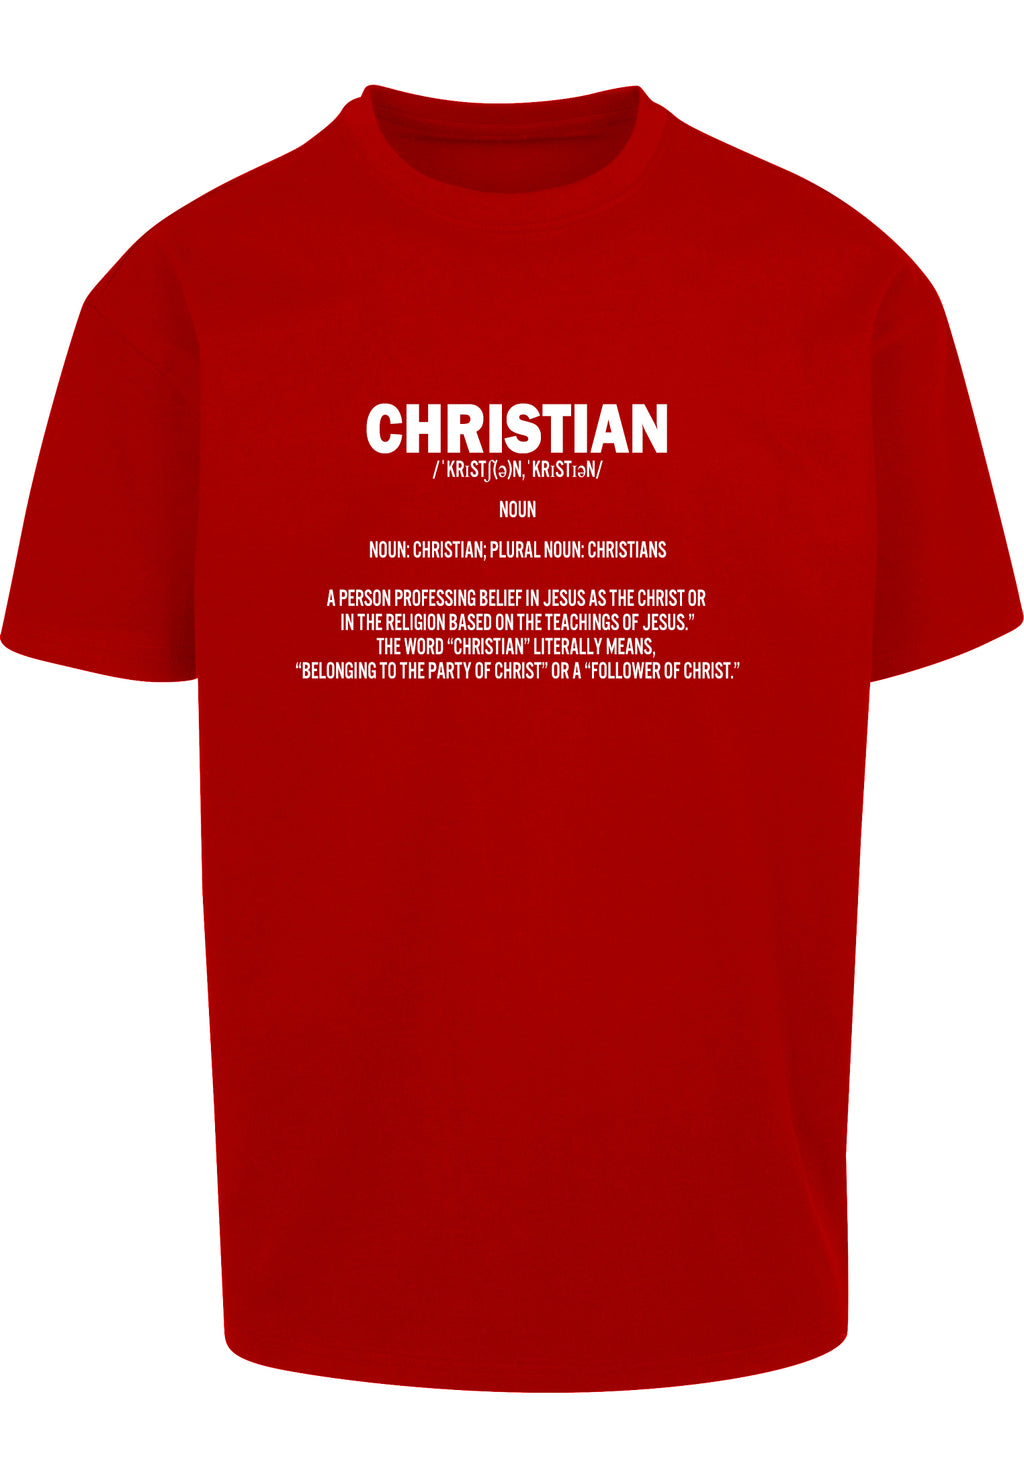 DEFINE CHRISTIAN Unisex Oversized T-Shirt (Red)